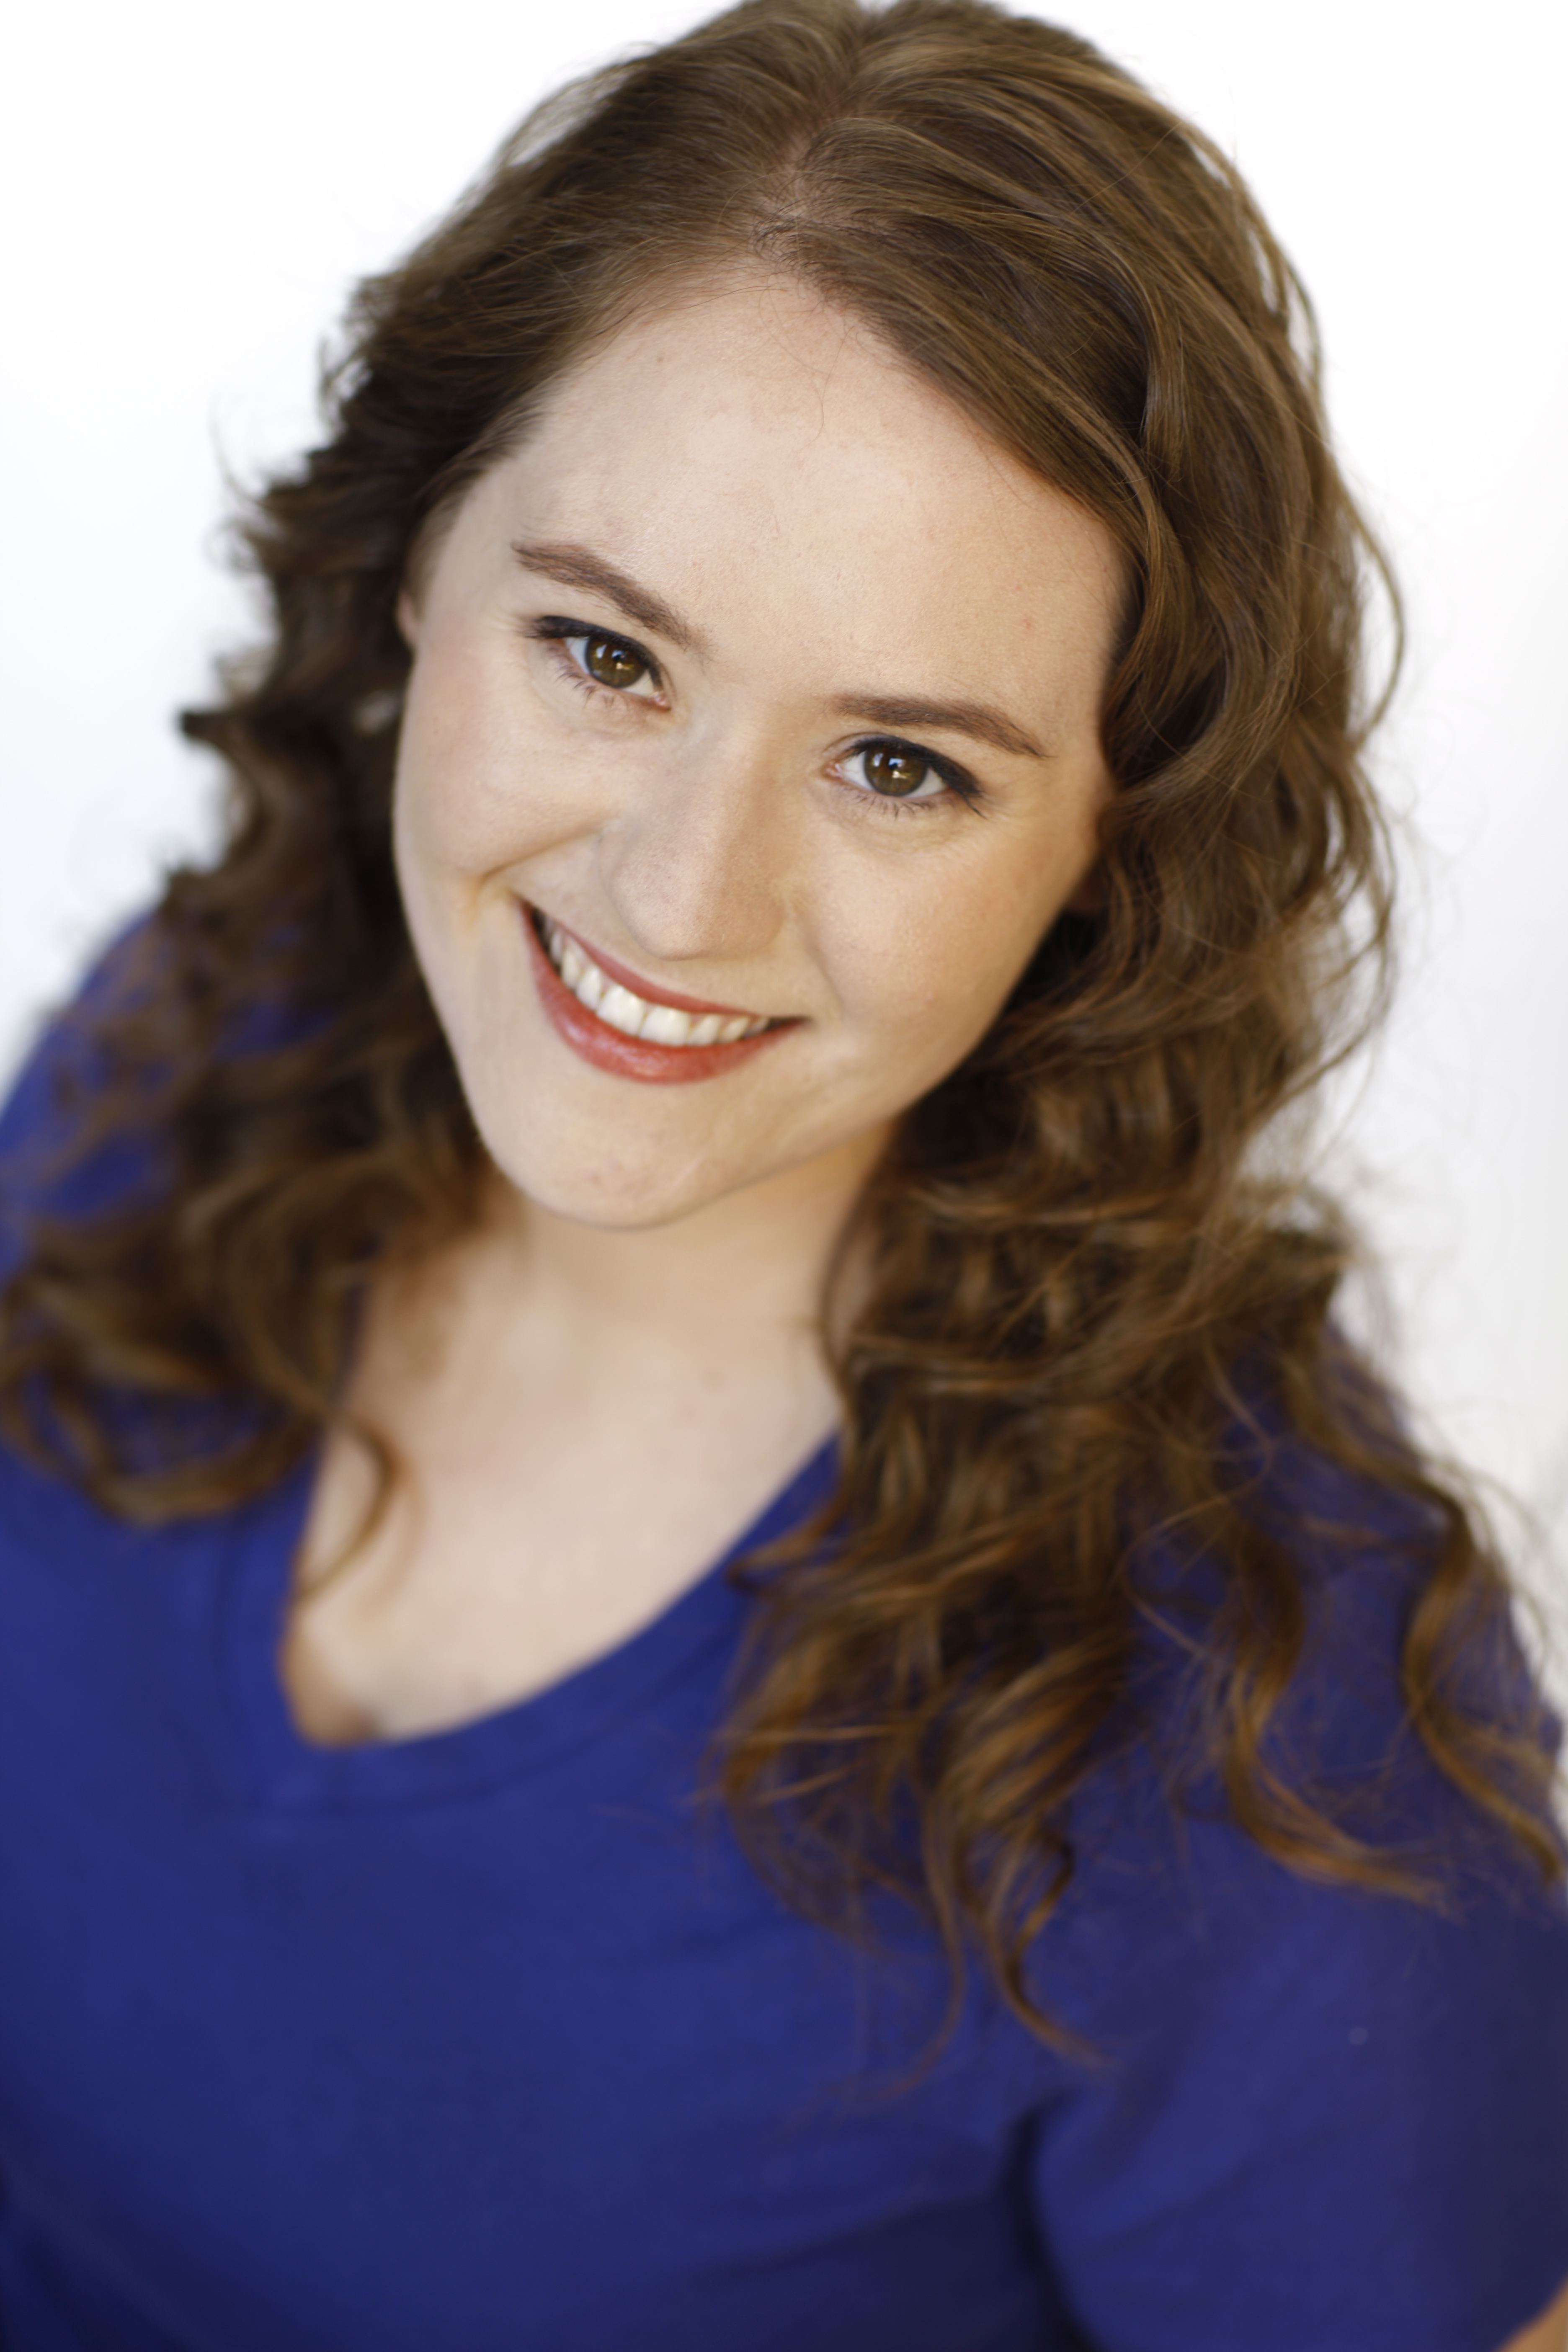 Katie Bournival, Tampa Bay Music Academy, Oddessa, Lutz, Land O' Lakes, FL, Florida, Private Voice Music Teacher Faculty